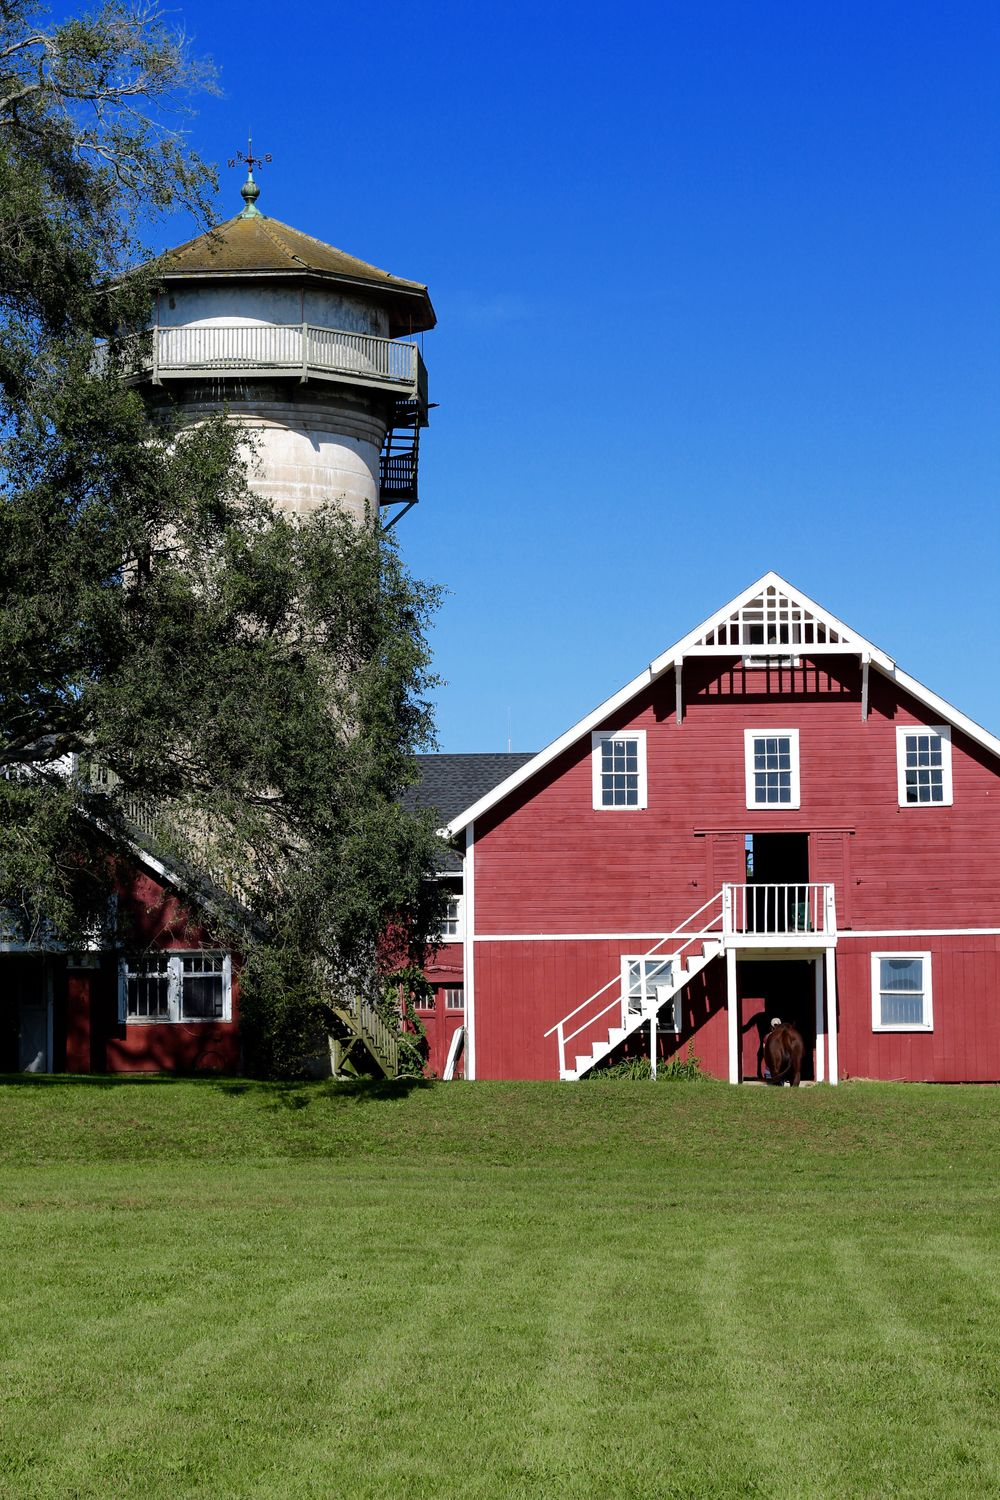 Close up of large riding barn.